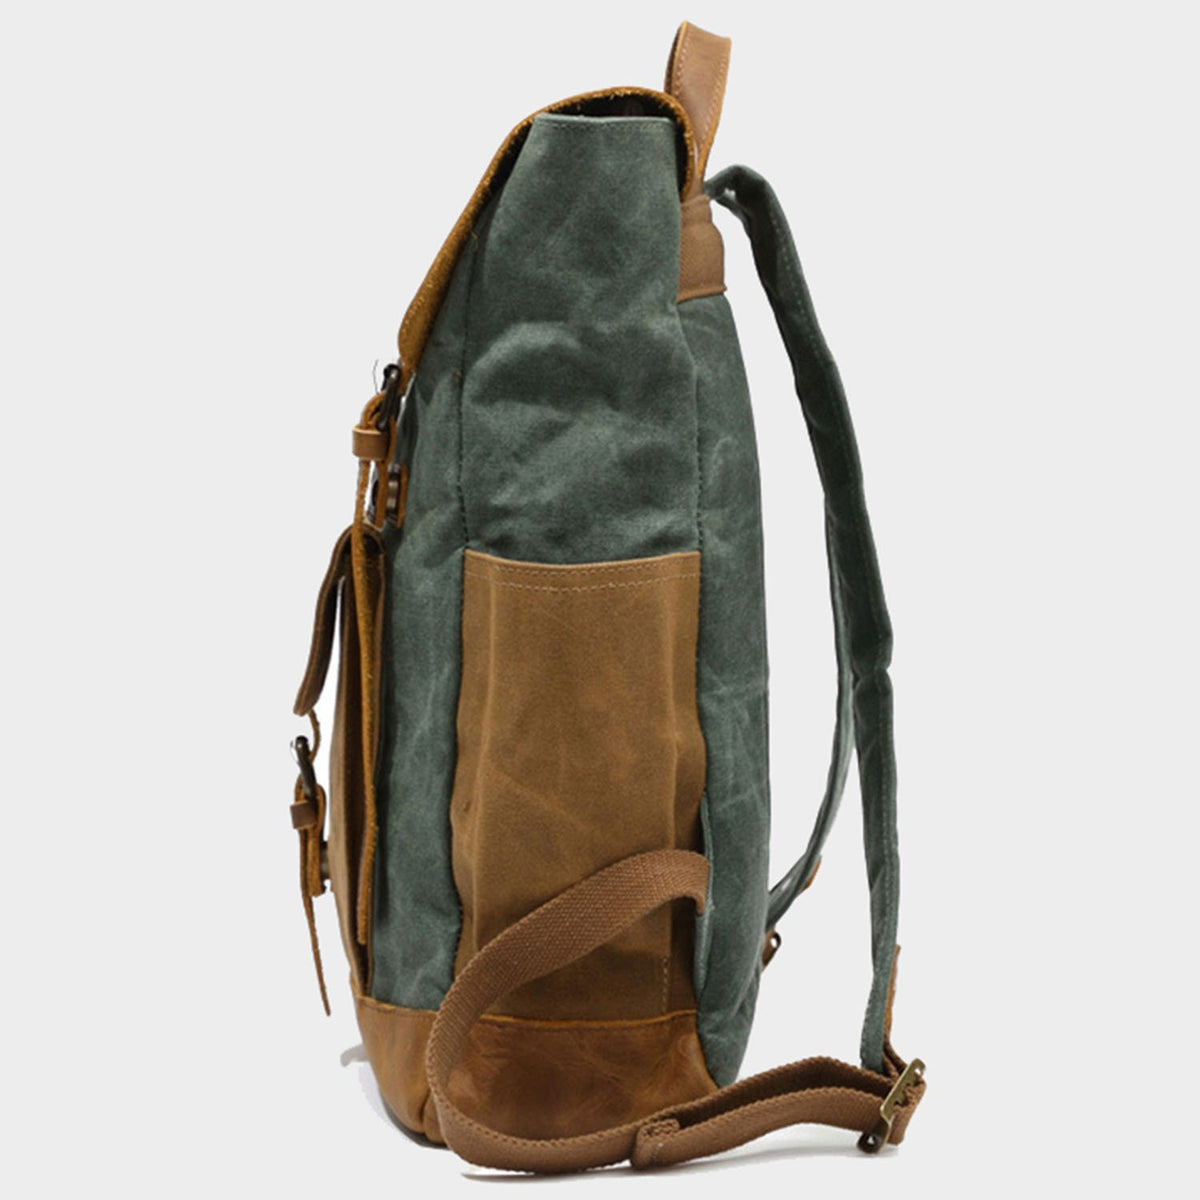 Vintage Style Unisex Canvas & Leather Rucksack Backpack 14""